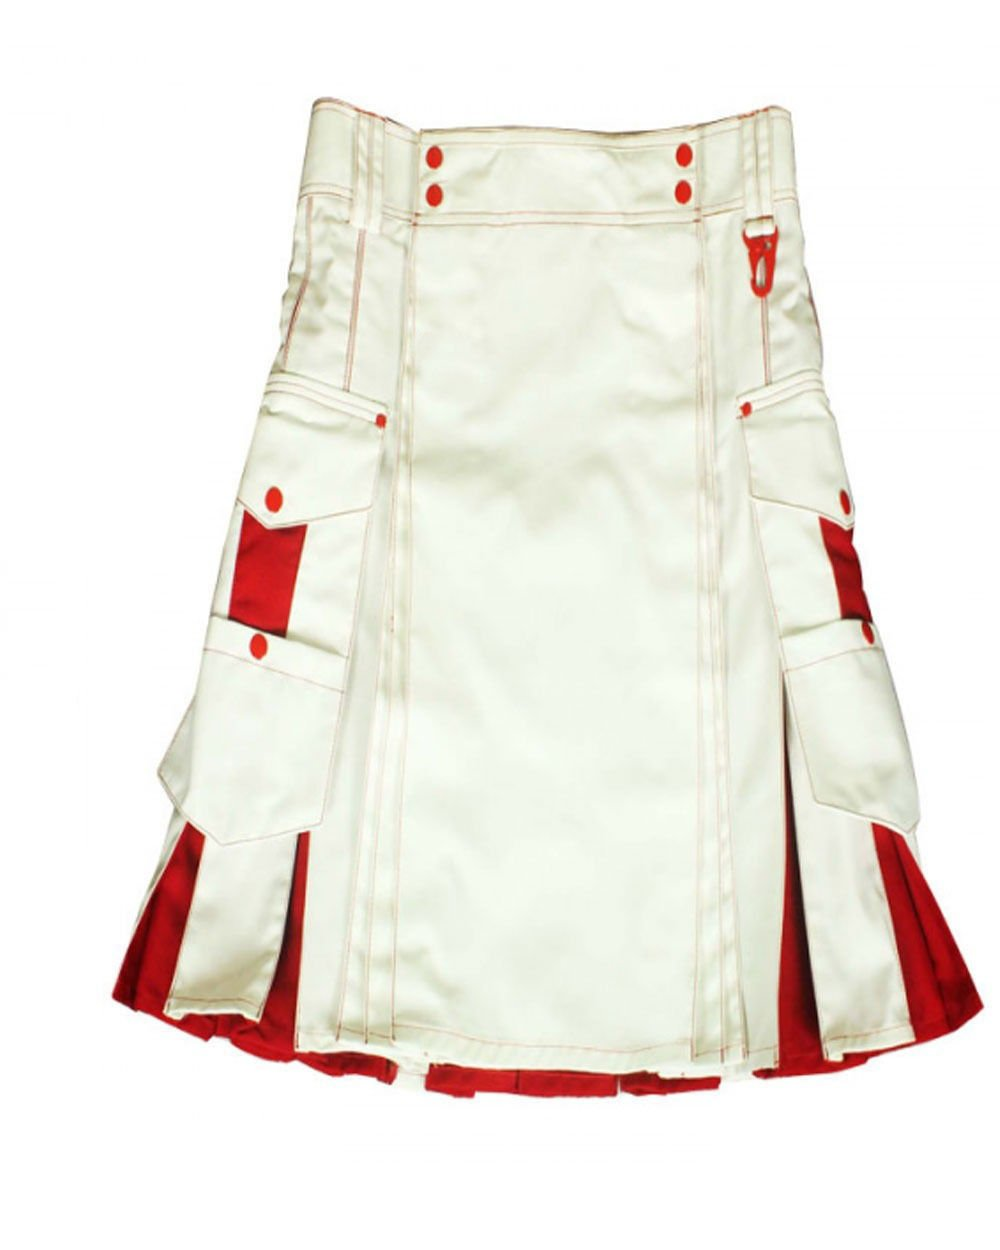 56 Size Handmade White & Red Cotton Kilt for Active Men, Hybrid Cotton Utility Deluxe Kilt